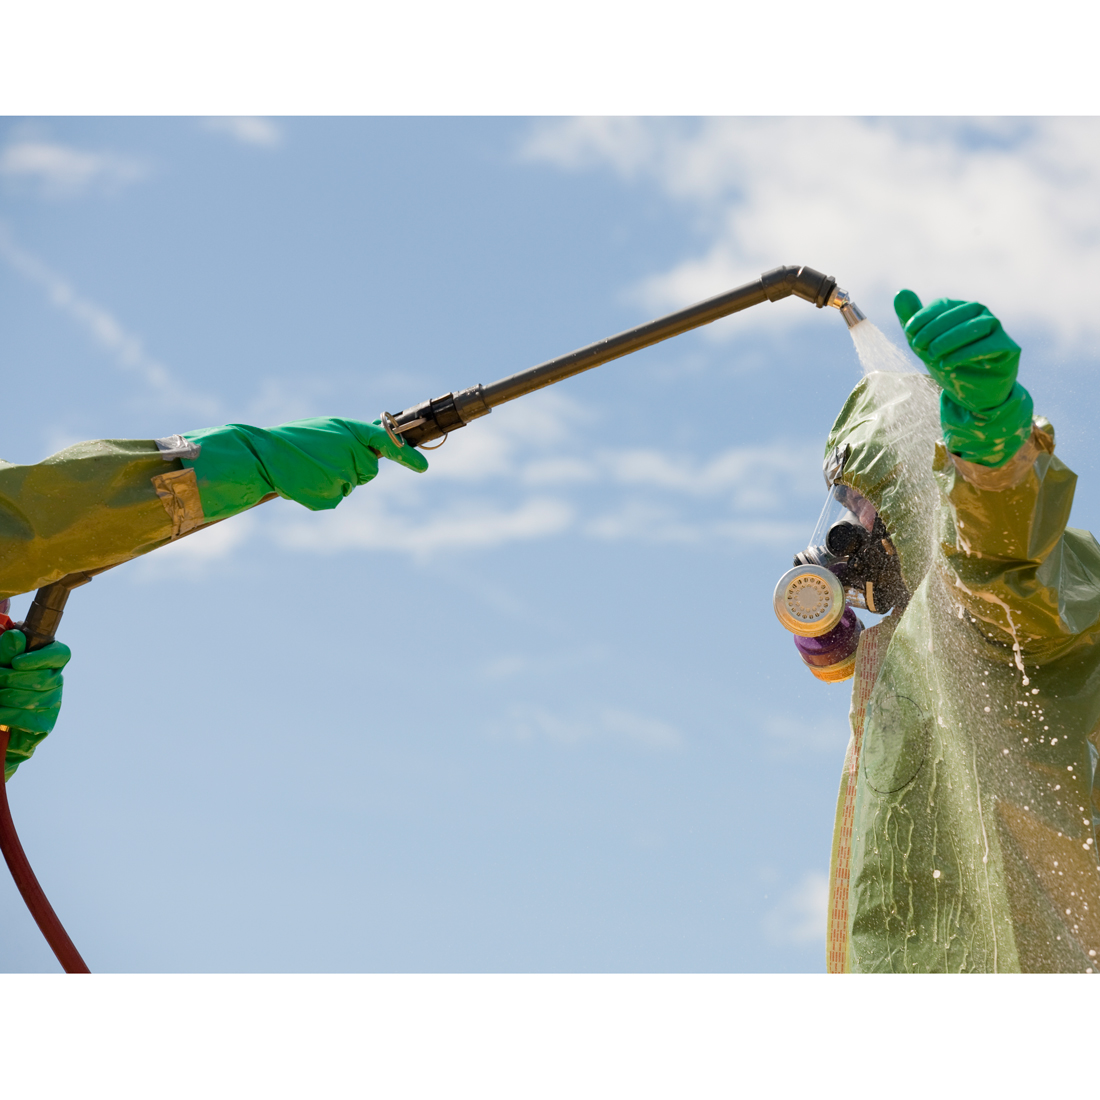 Gross decontamination in use.